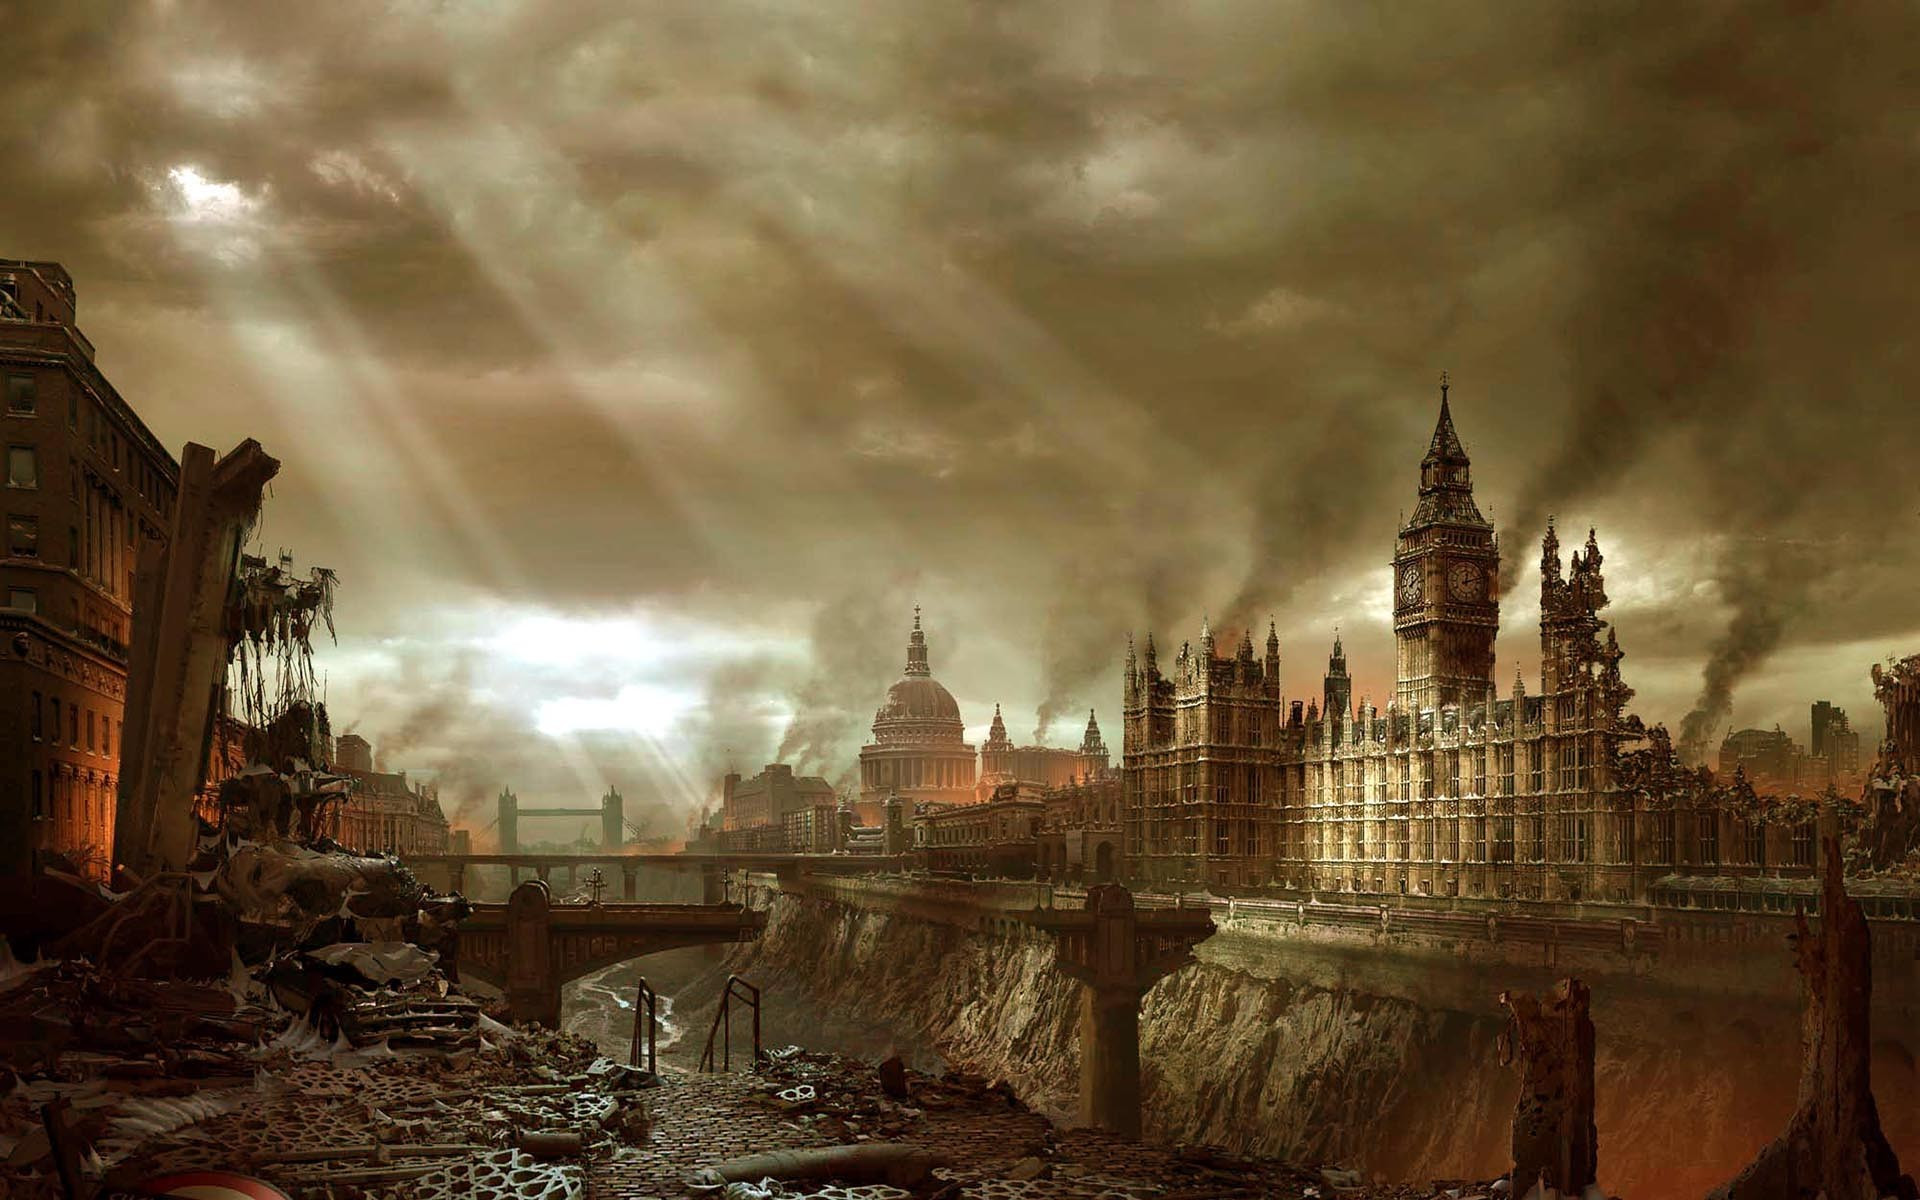 Wrecked London